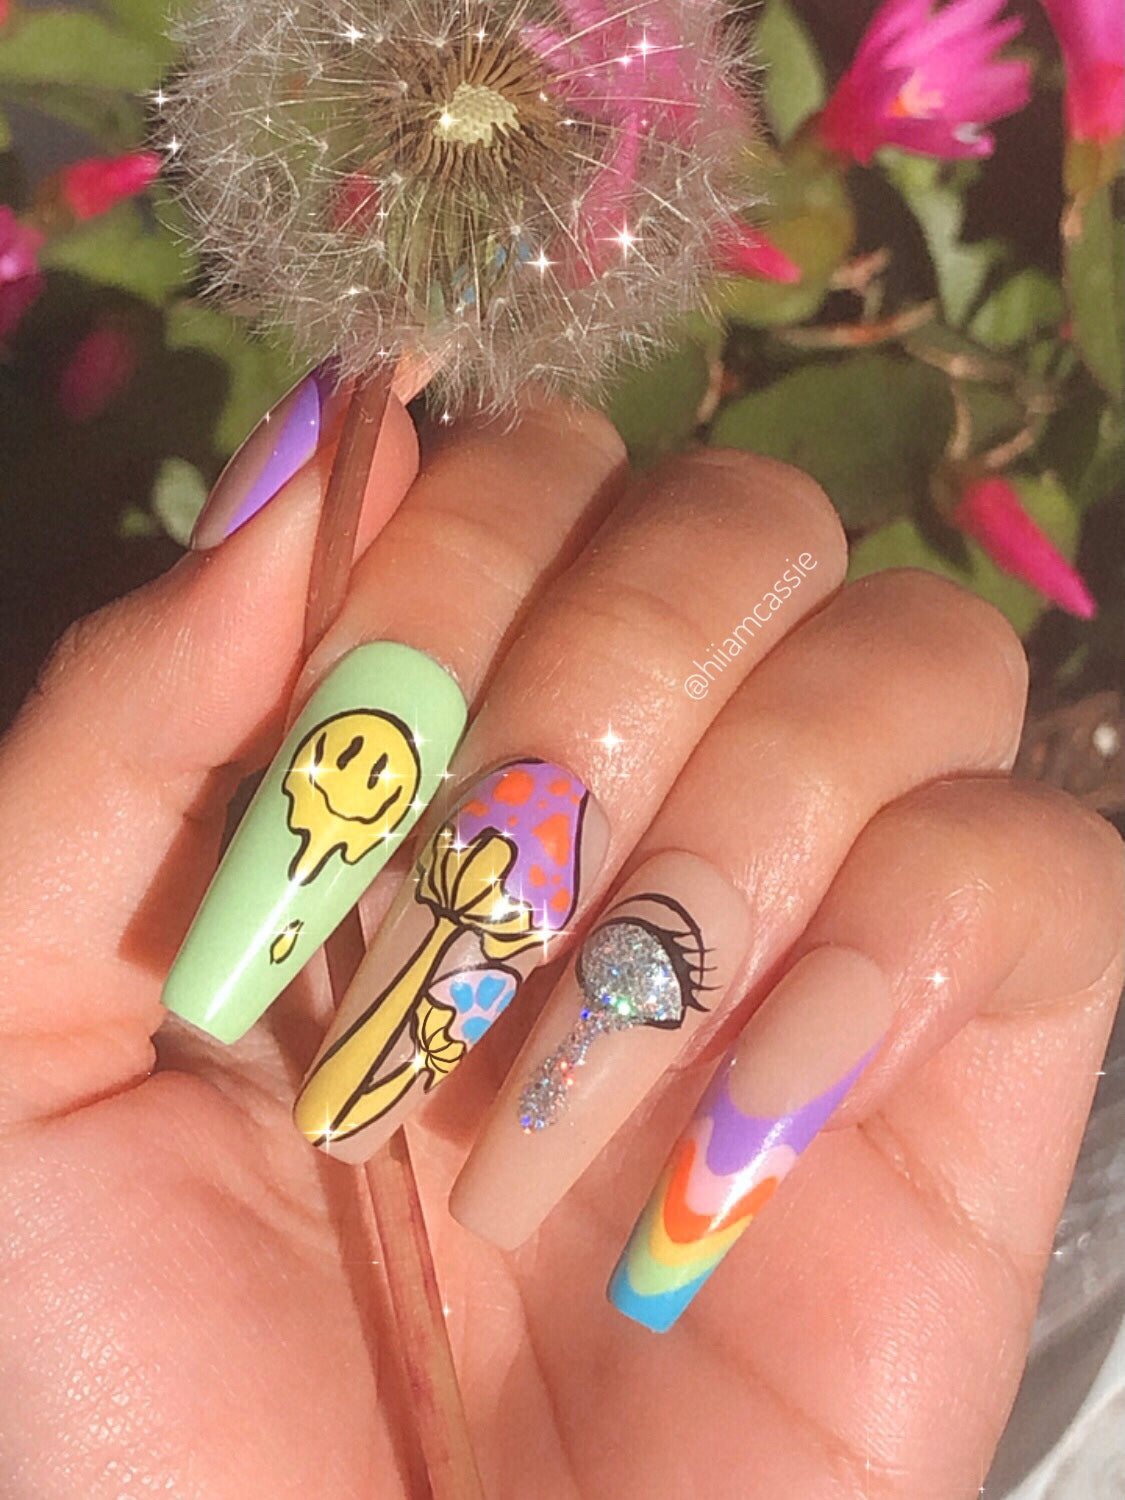 Trippy nails by @hiiamcassie